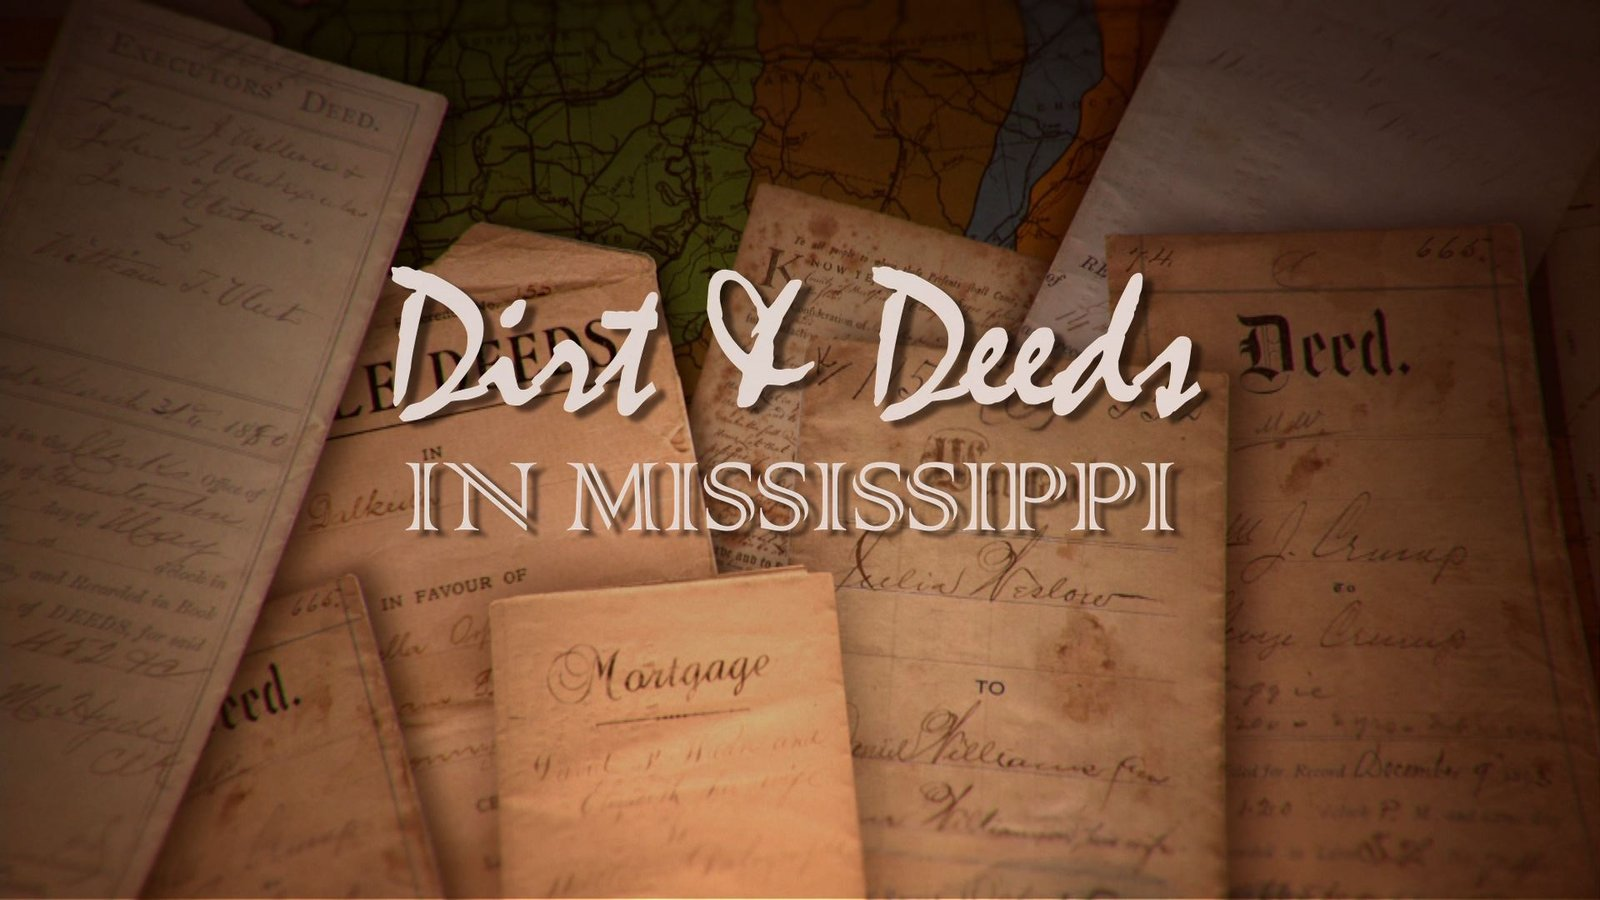 Dirt and Deeds in Mississippi - African American's Fighting for Their Land in the 1960's